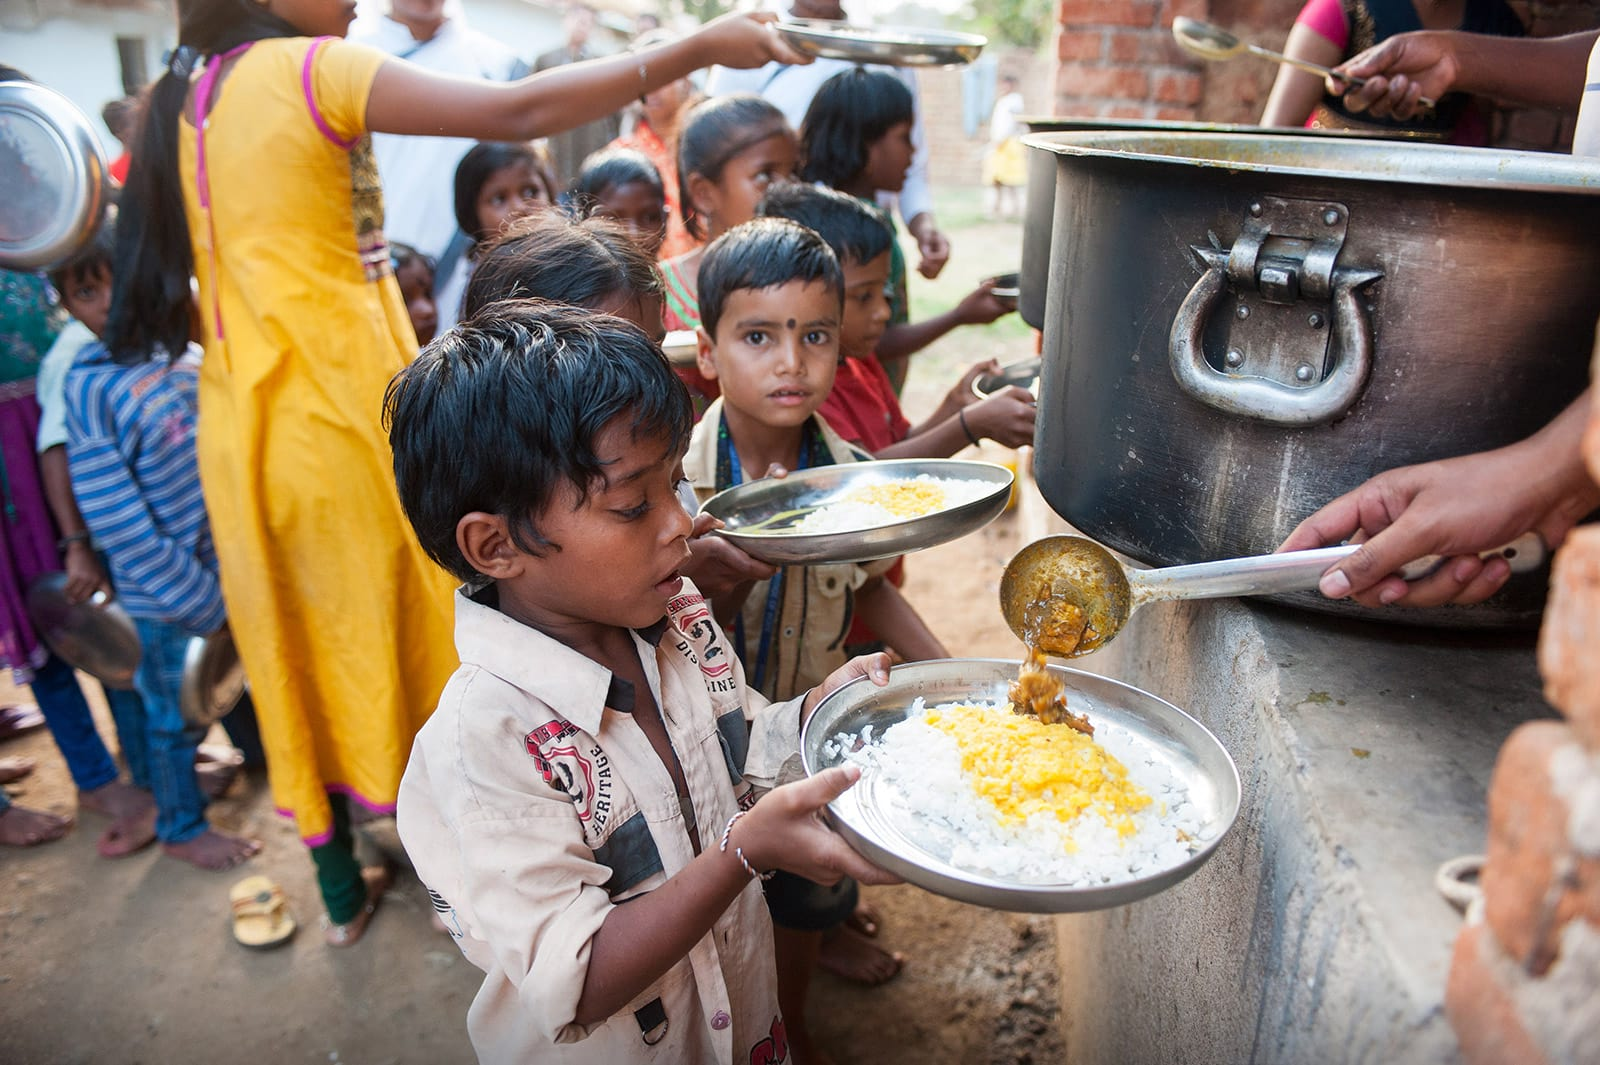 On World Hunger Day, May 28, GFA World reports growing desperation in India as it supports efforts to help thousands starving amid COVID 19